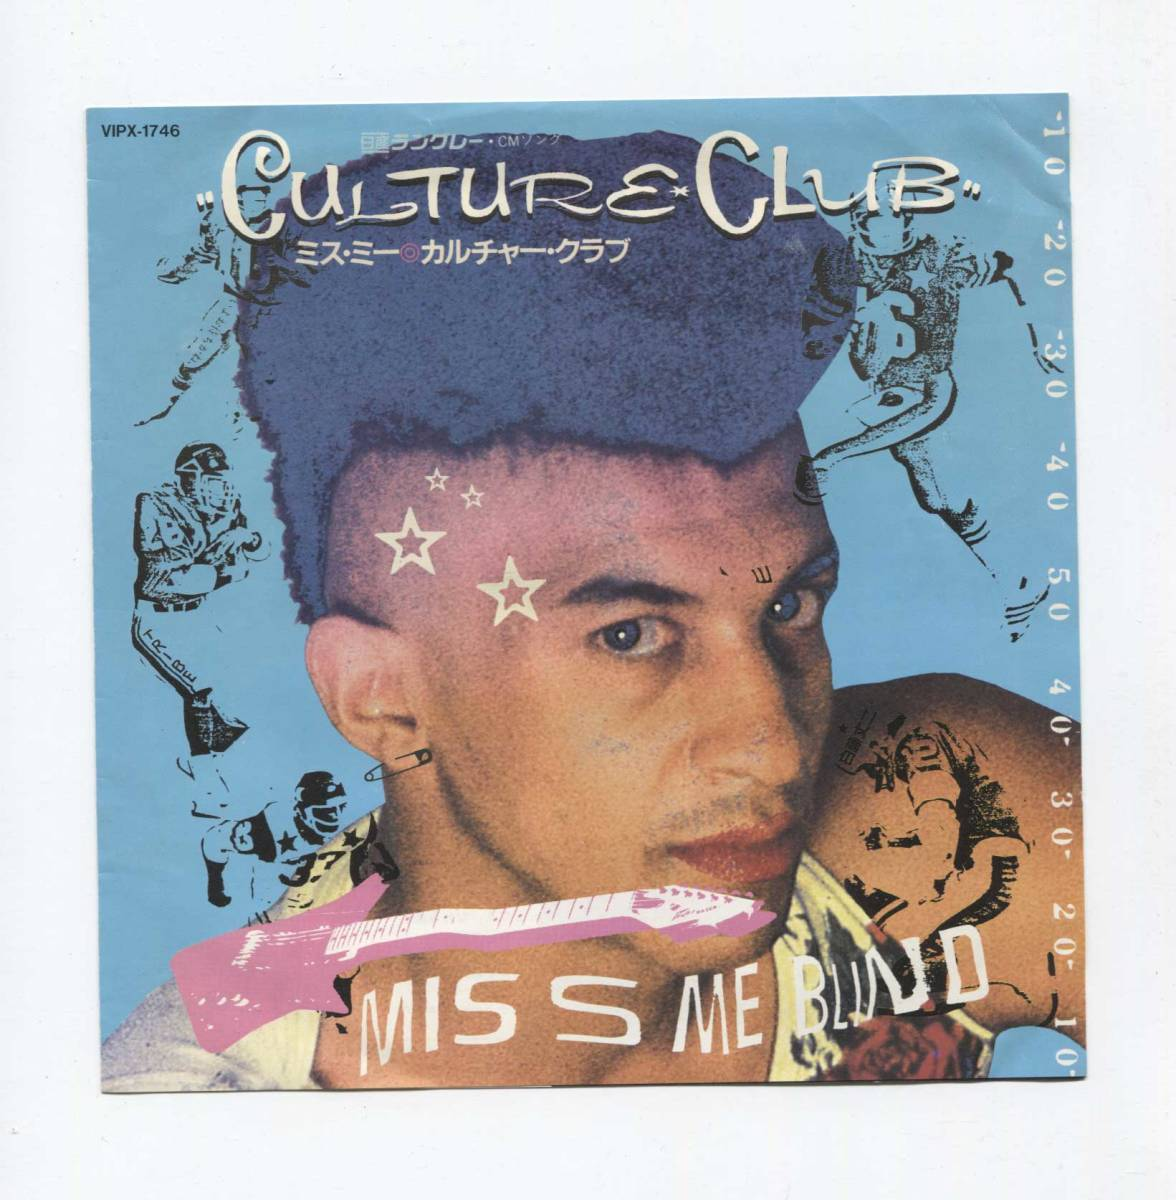 【EP レコード シングル 同梱歓迎】 CULTURE CLUB ■ MISS ME BLIND ■ カルチャー・クラブ ■ ミス・ミー ■ COLOUR BY NUMBERS_画像1